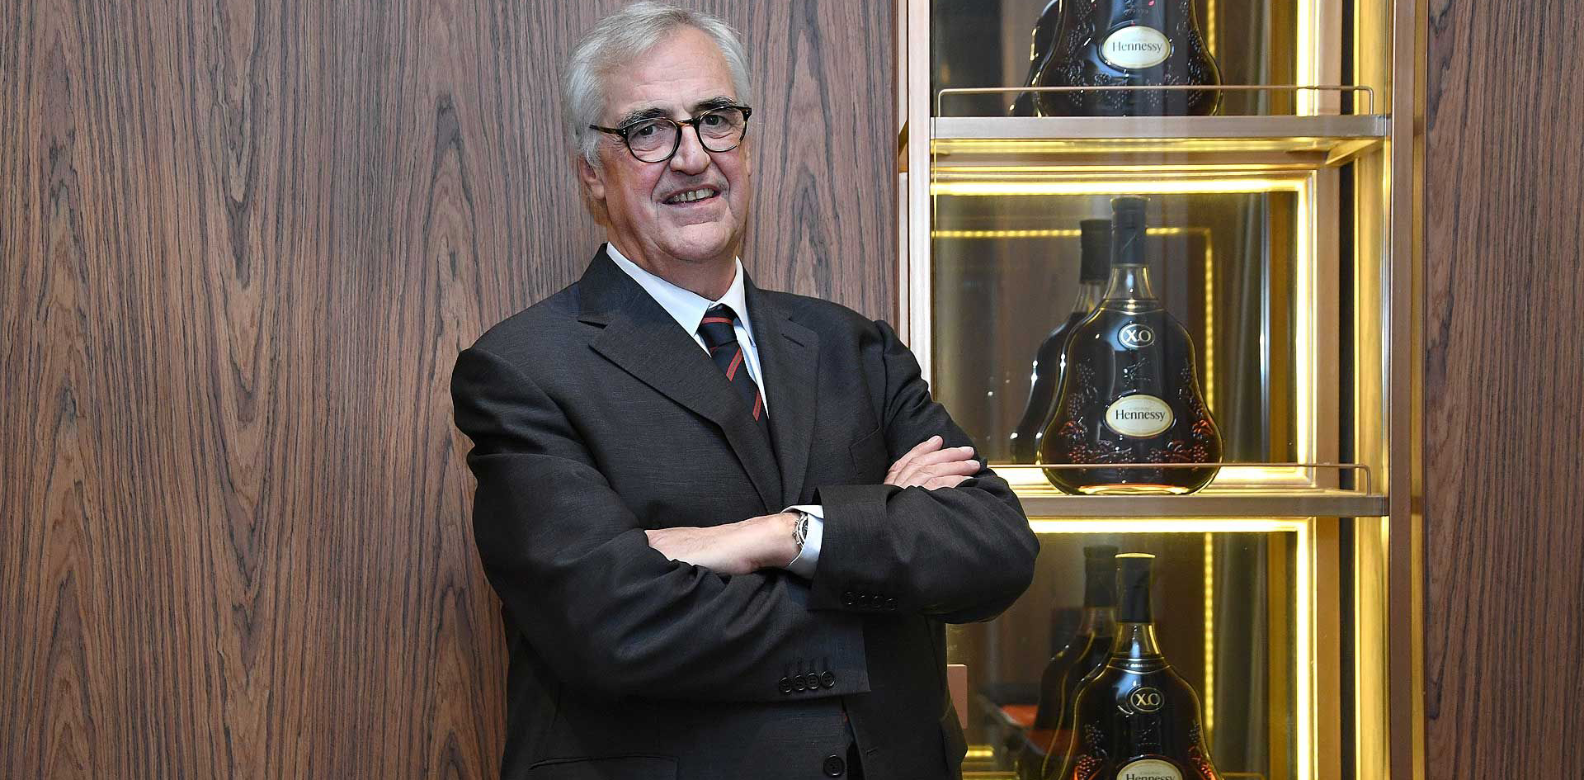 Maurice Hennessy, Yes, That Hennessy, On Cognac & Family Legacy photo